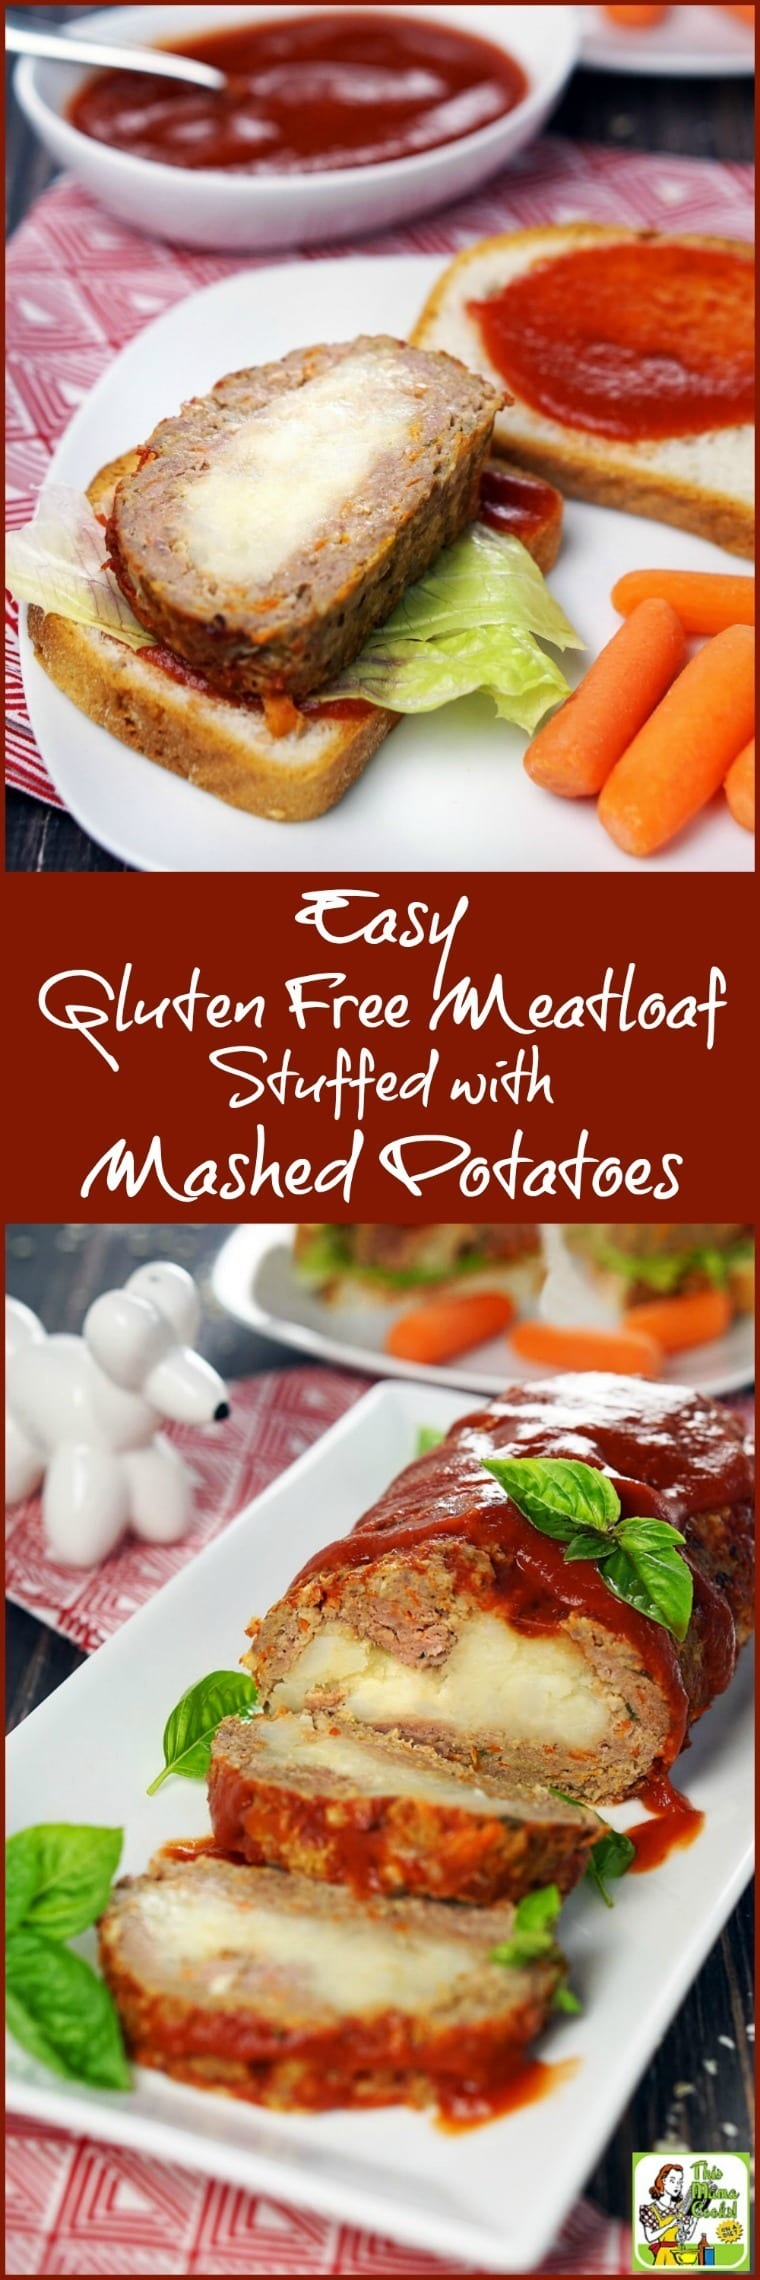 If you're looking for easy gluten-free dinner recipes that can do double duty as a lunch or after-school snack, you'll love this  Easy Gluten-Free Meatloaf Stuffed with Mashed Potatoes recipe. #recipes #easy #recipeoftheday #glutenfree #easyrecipe #easyrecipes #glutenfreerecipes #dinner #easydinner #dinnerrecipes #dinnerideas